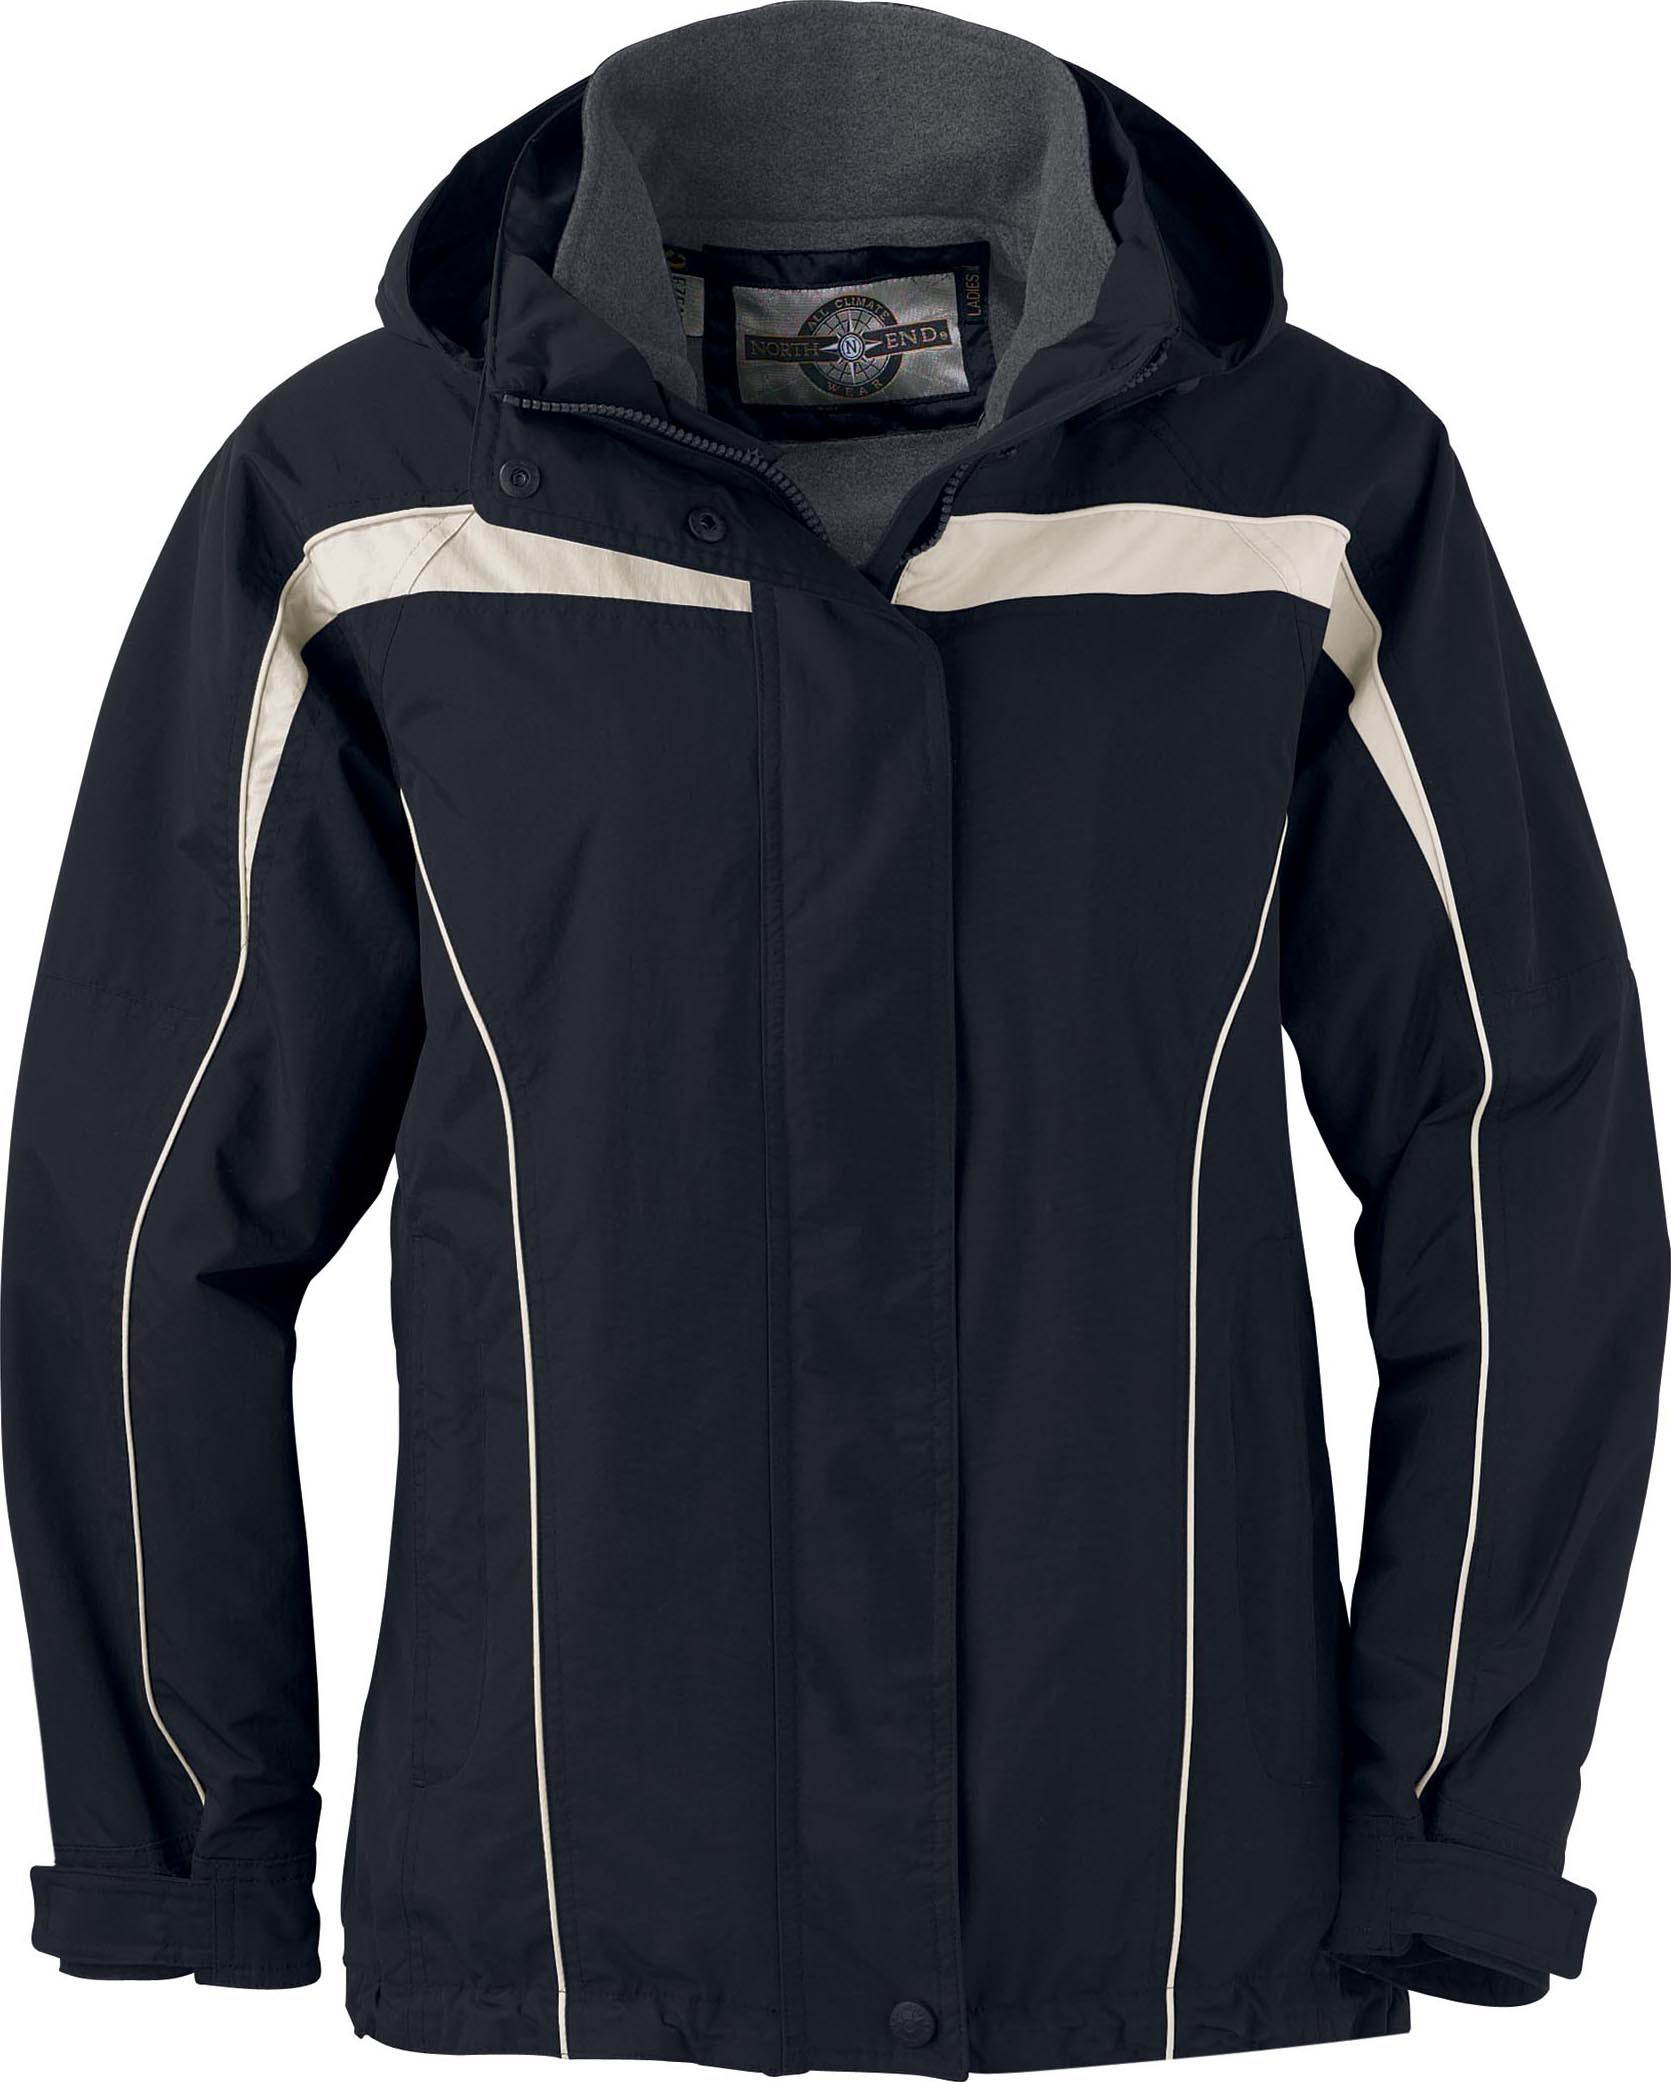 Ash City UTK 2 Warm.Logik 78019 - Ladies' 3-In-1 Jacket ...